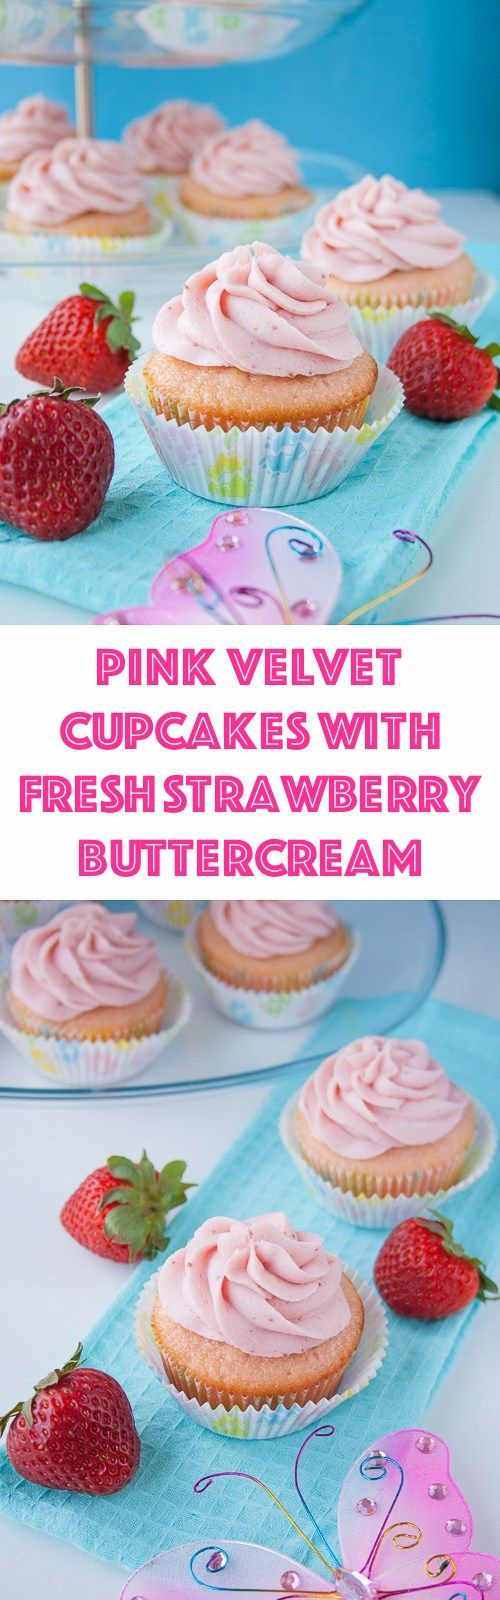 These moist and buttery vanilla cupcakes are soft pink in color and topped with a strawberry reduction buttercream. I made them for my best friend's baby shower and they were a hit!